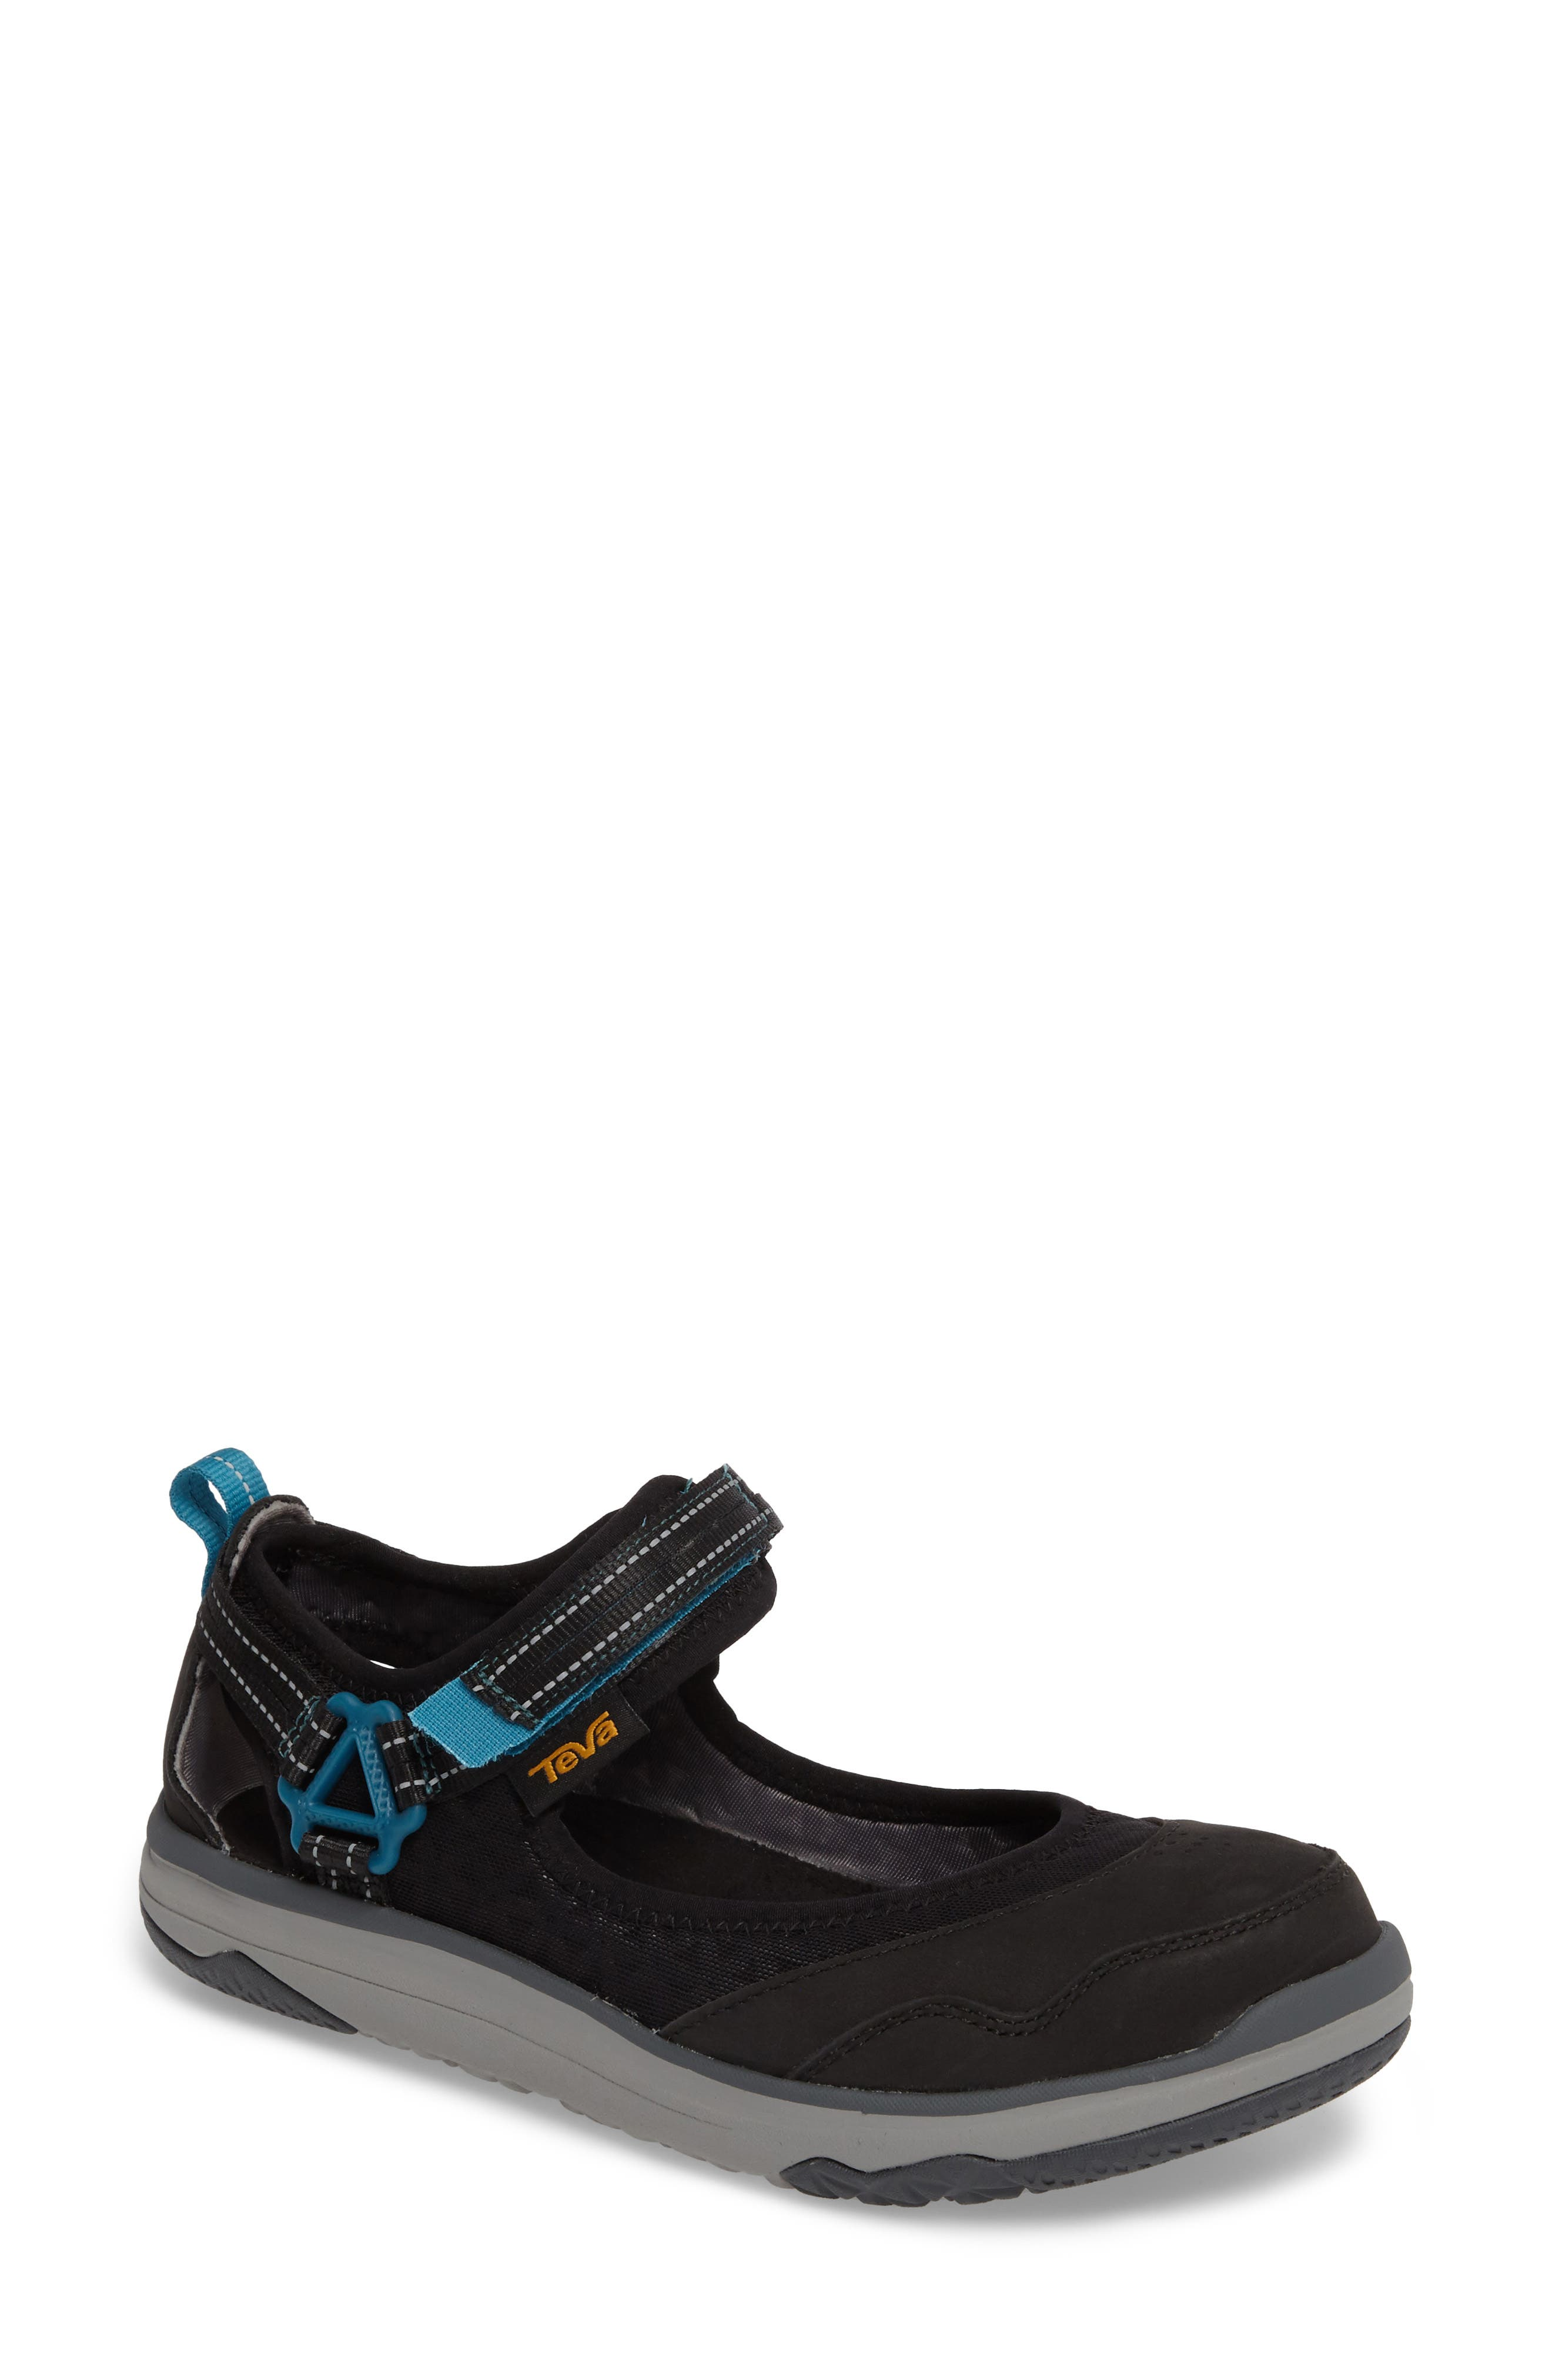 Teva Terra Float Travel Mary Jane Flat (Women)